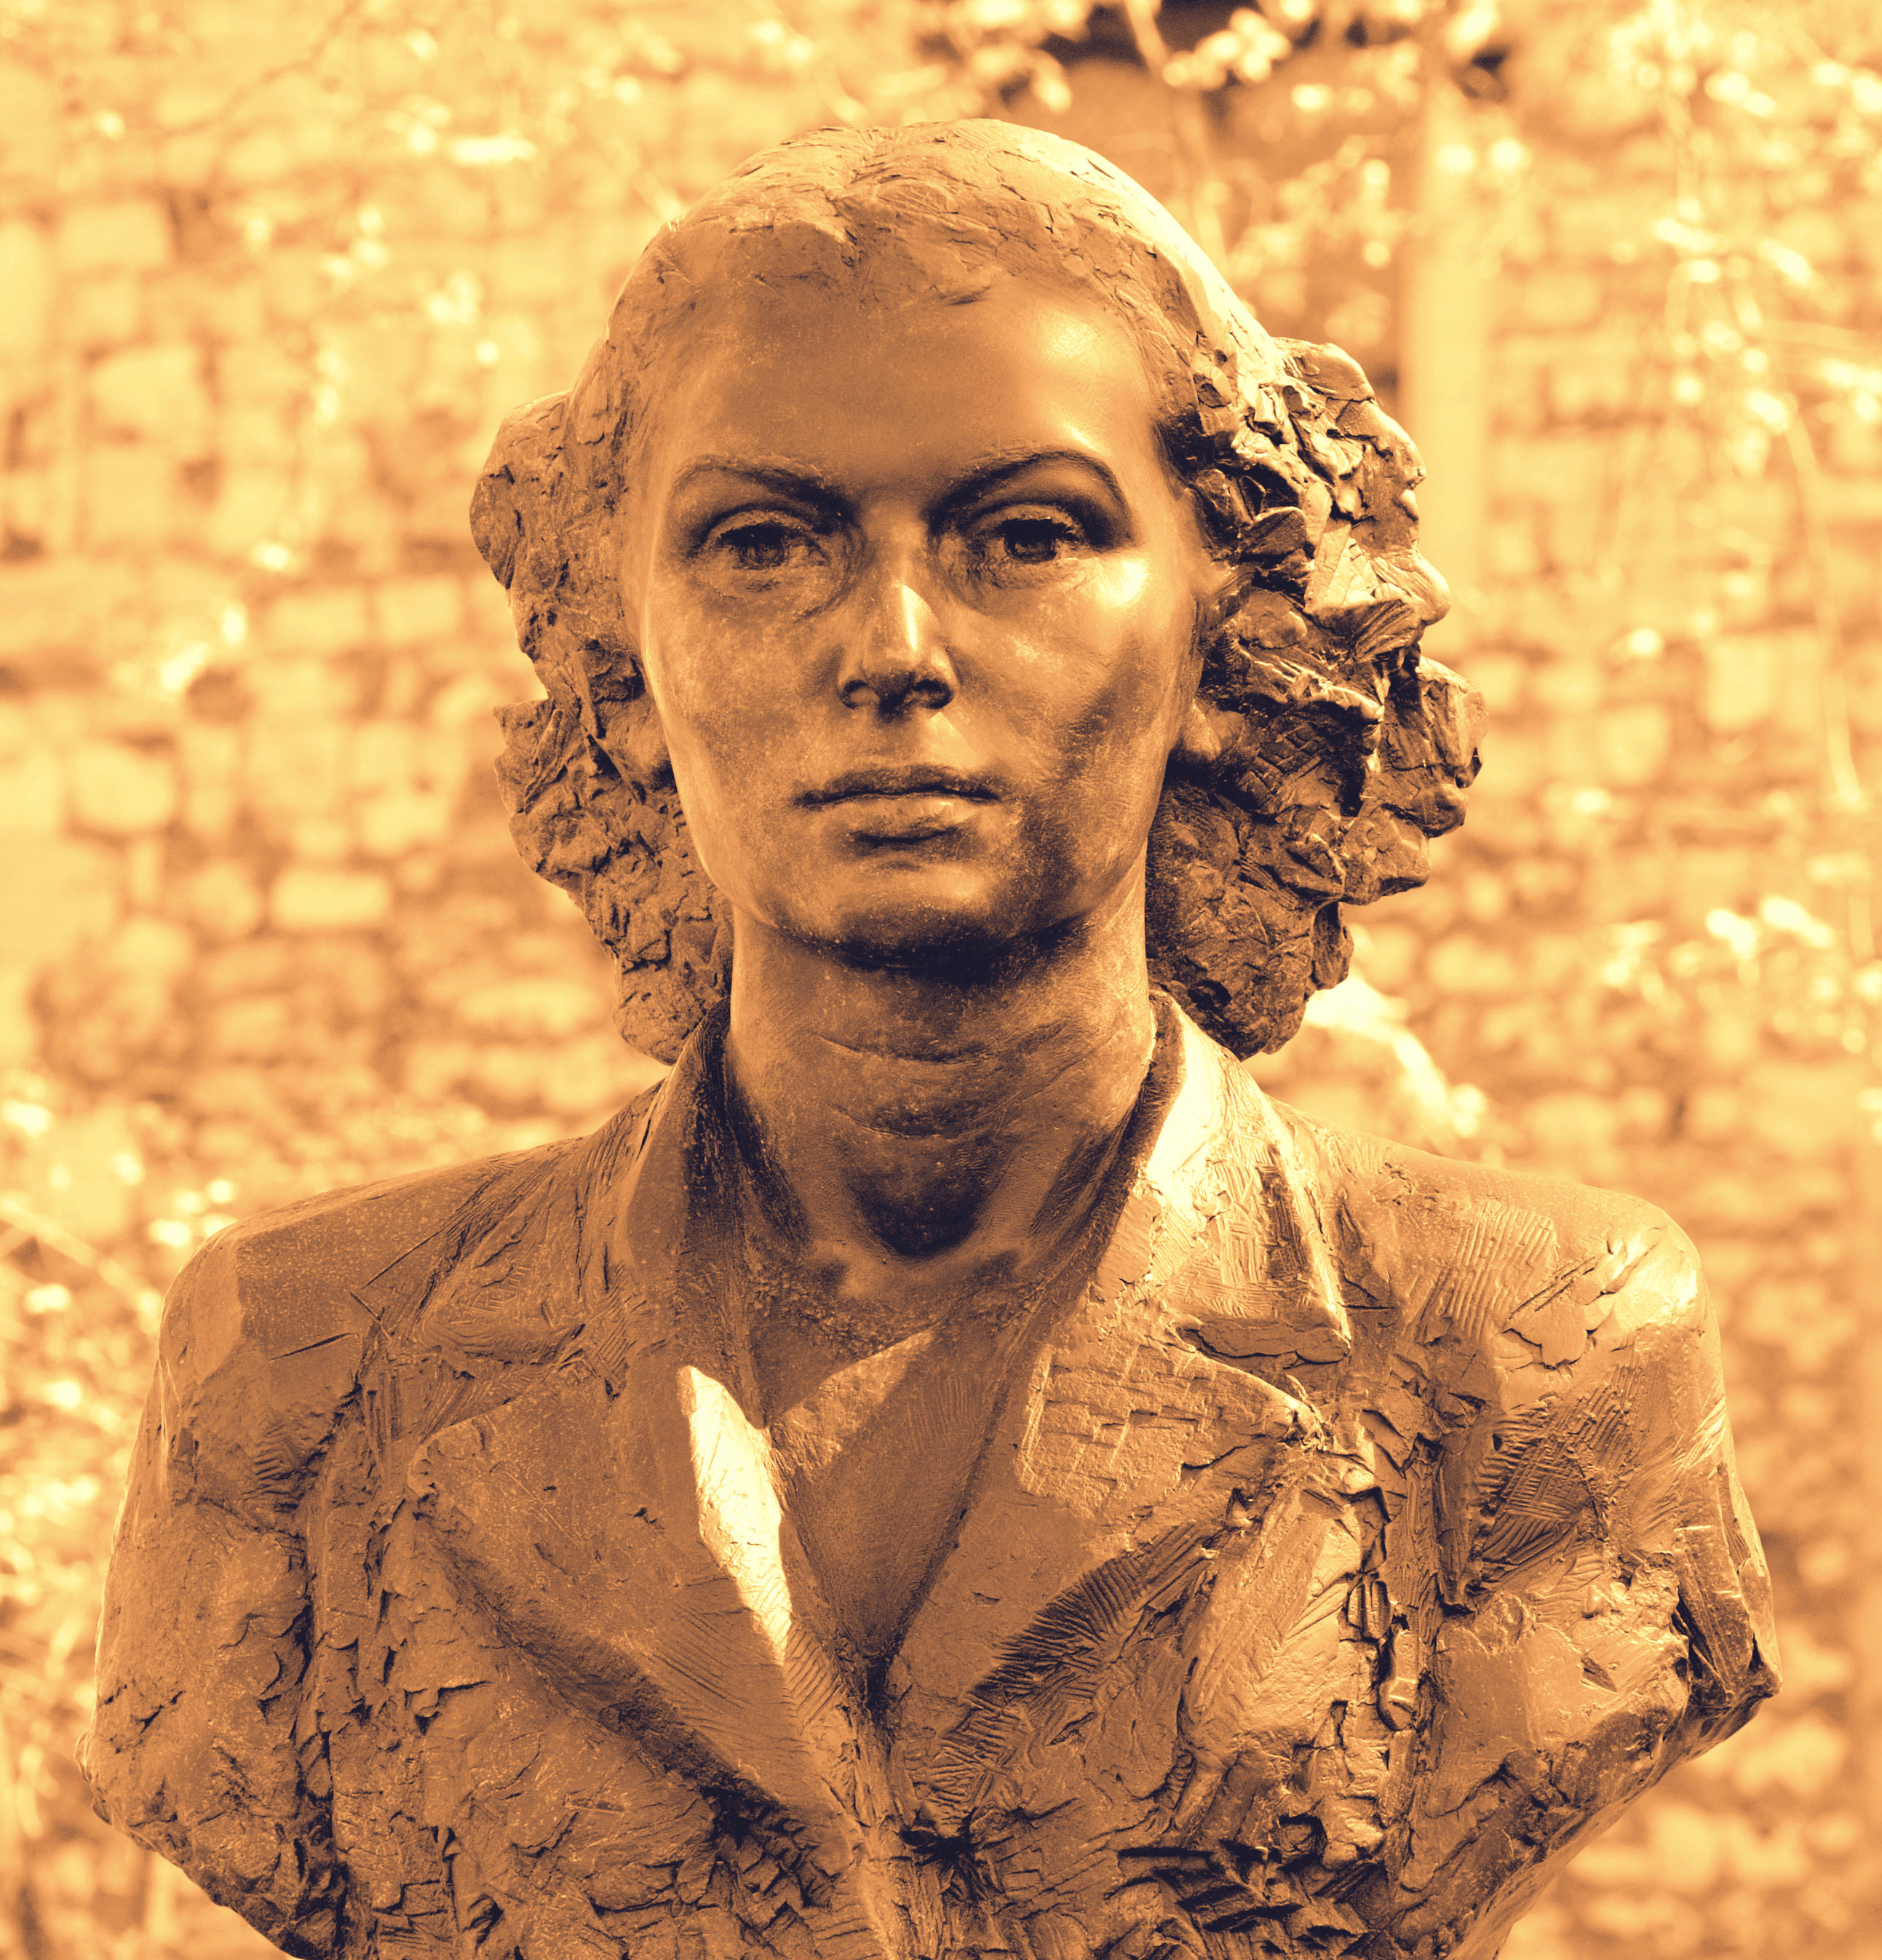 DYHF3T London, England, UK. Bust Of Violette Szabo On The Special Operations Executive Memorial (2009: Karen Newman)